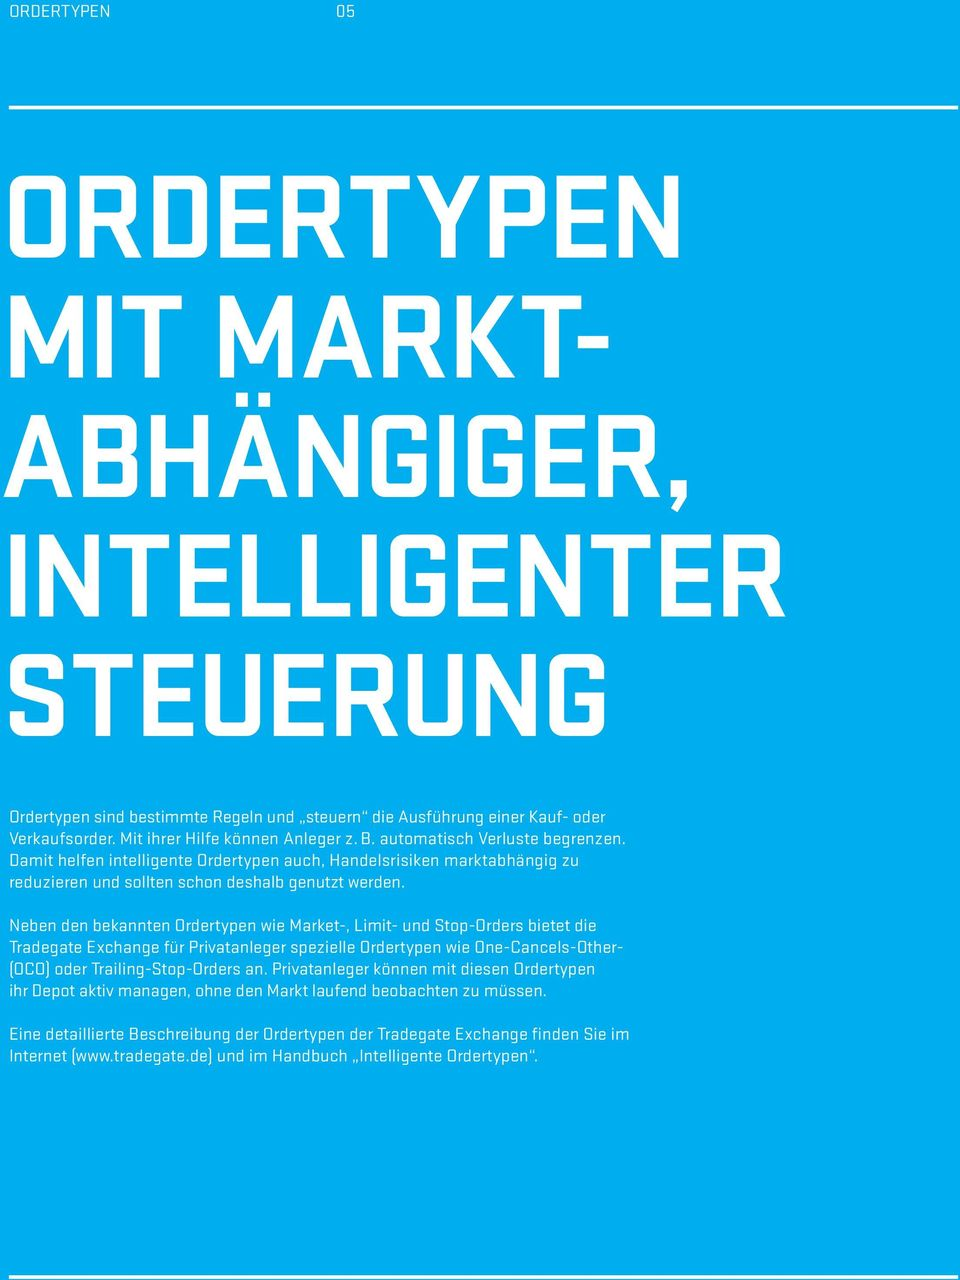 Neben den bekannten Ordertypen wie Market-, Limit- und Stop-Orders bietet die Tradegate Exchange für Privatanleger spezielle Ordertypen wie One-Cancels-Other- (OCO) oder Trailing-Stop-Orders an.